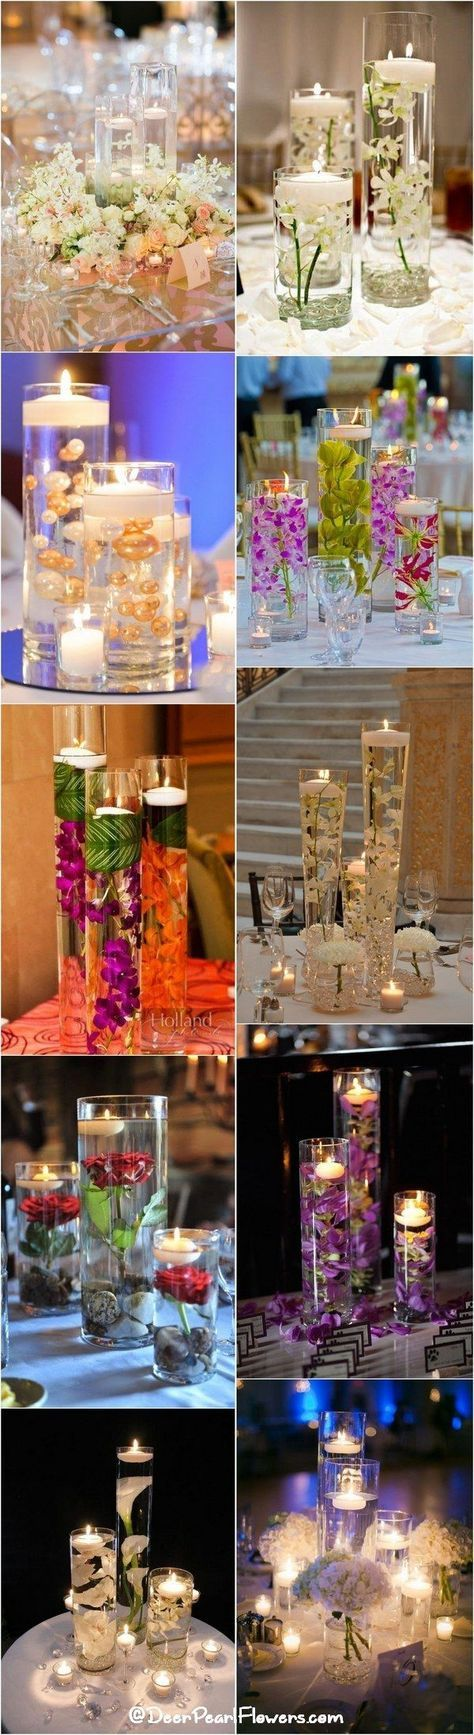 impossibly romantic floating wedding centerpieces centerpieces